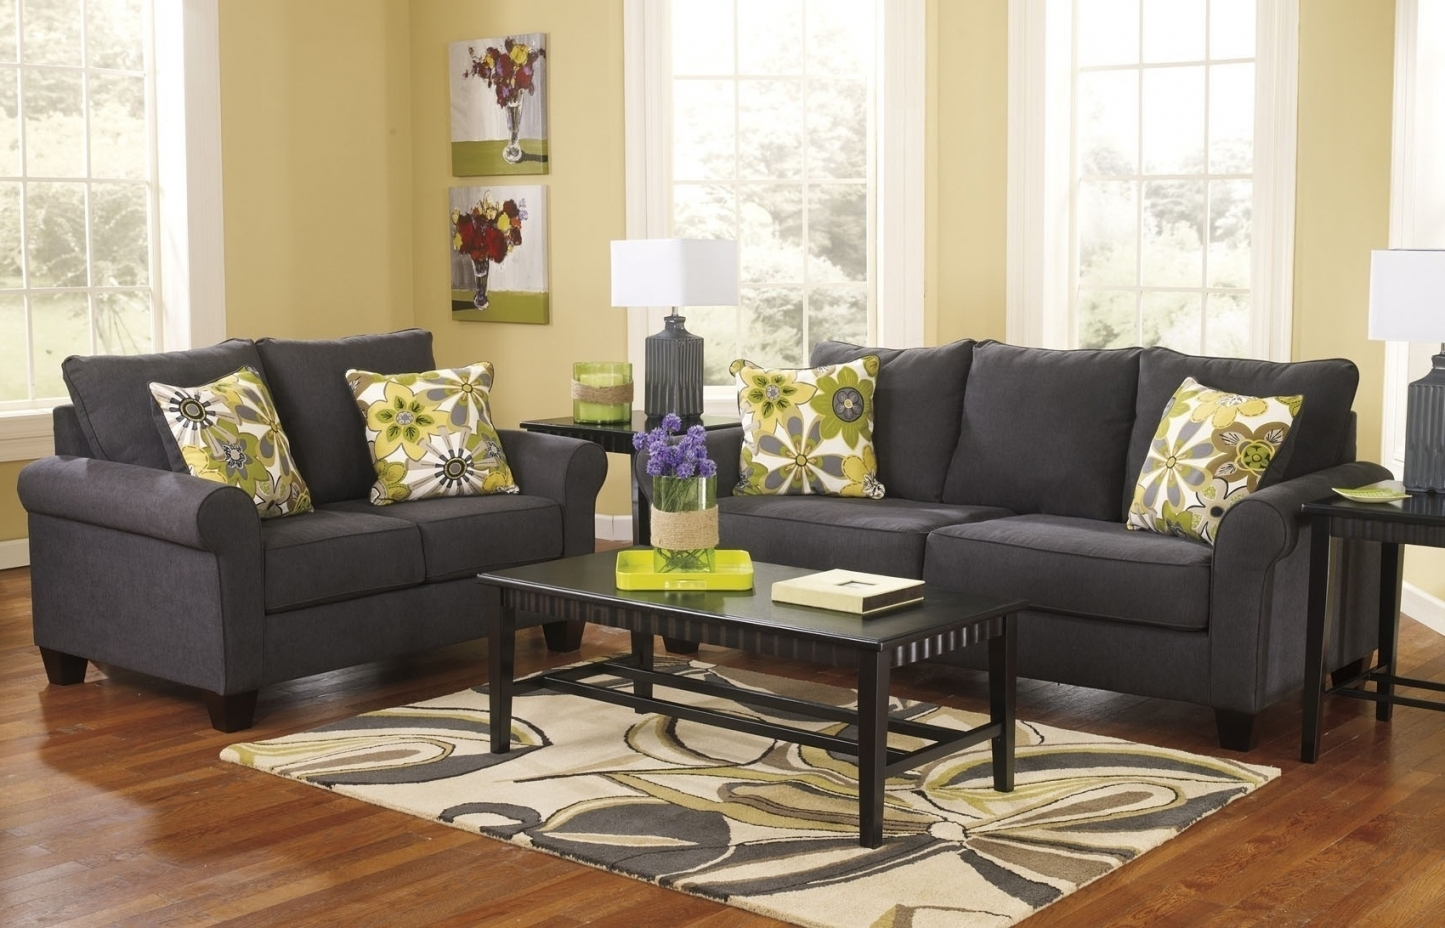 Trendy Sectional Sofas Under 300 Inside Sofa : Dual Reclining Loveseat Sectional Sofas Under 300 Couches (View 10 of 15)